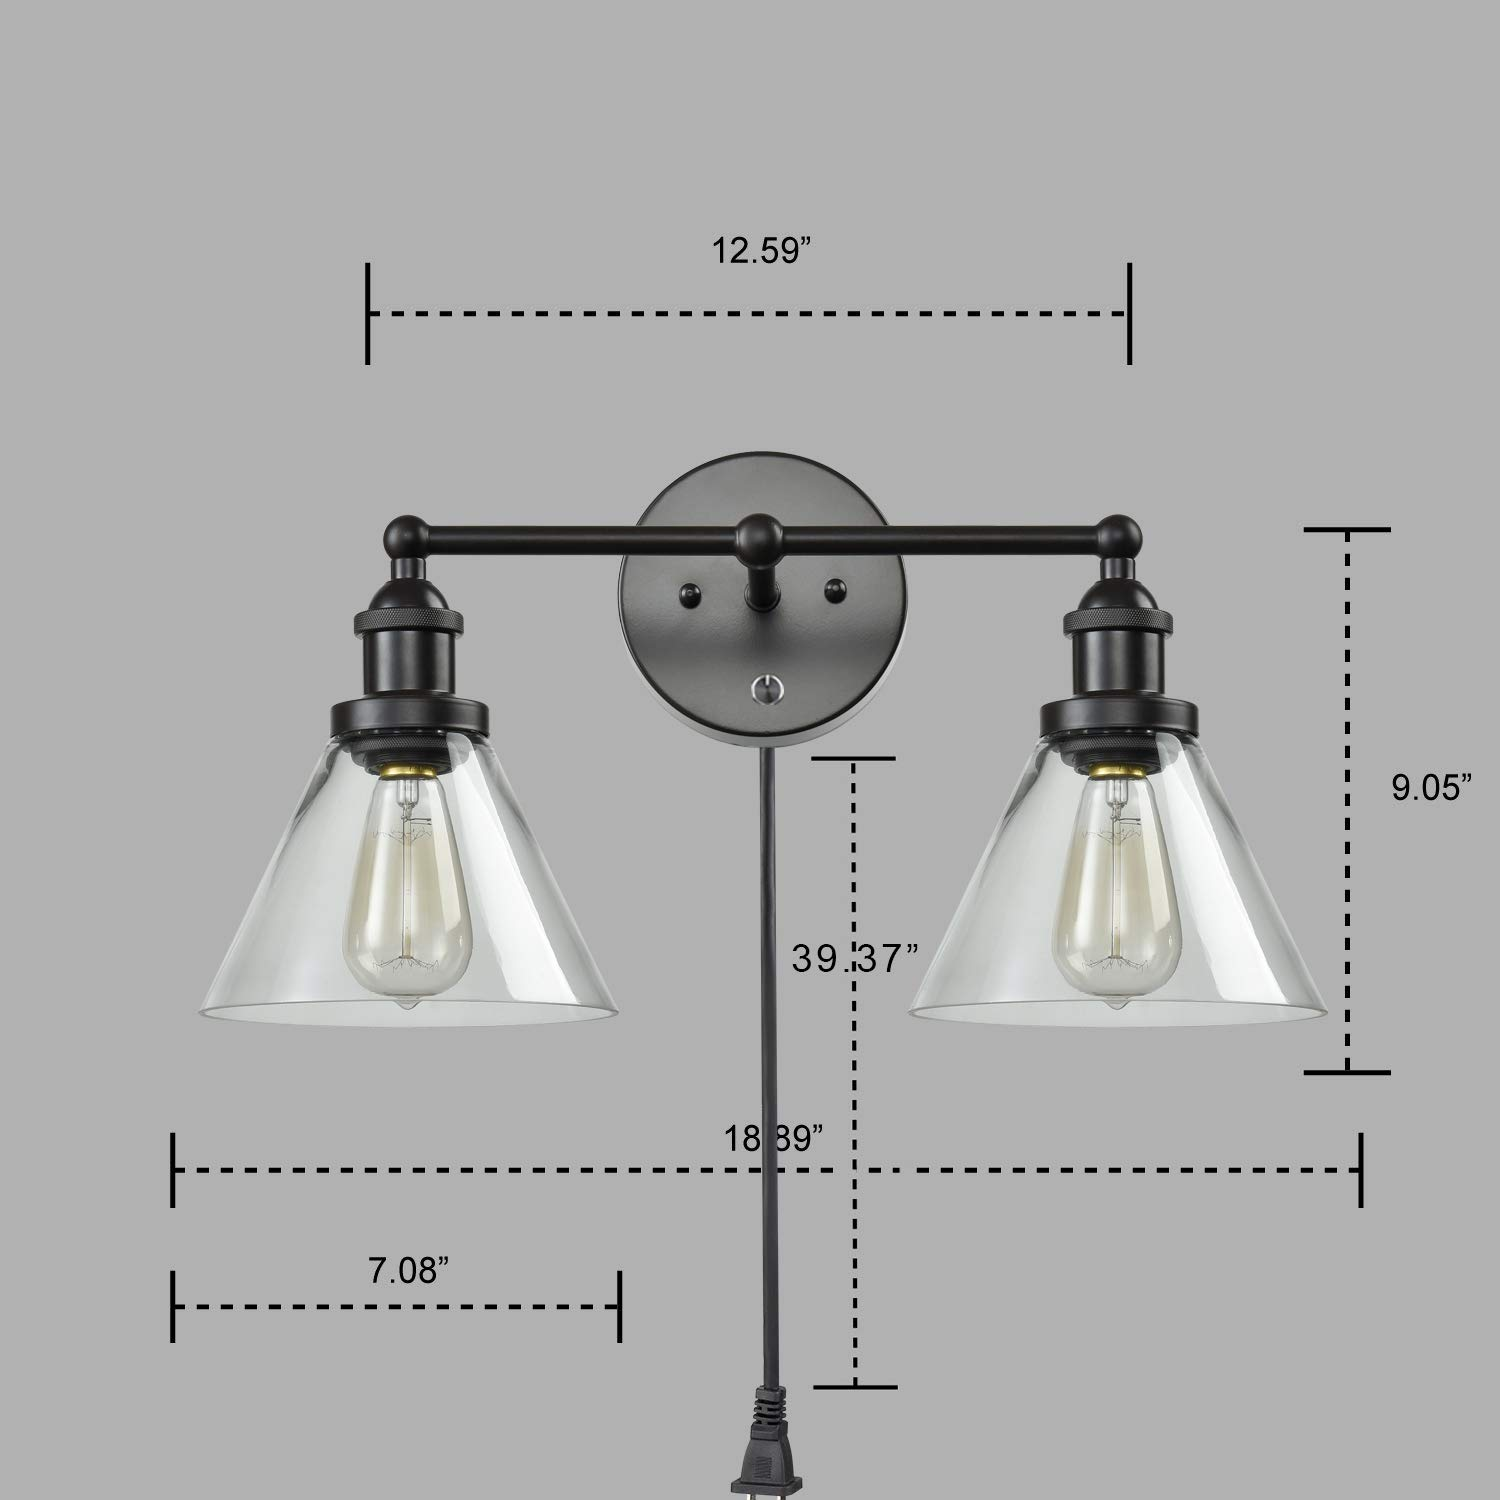 CLAXY Ecopower Lighting Mordern Glass & Metal 3-Lights Wall Sconce by CLAXY (Image #7)